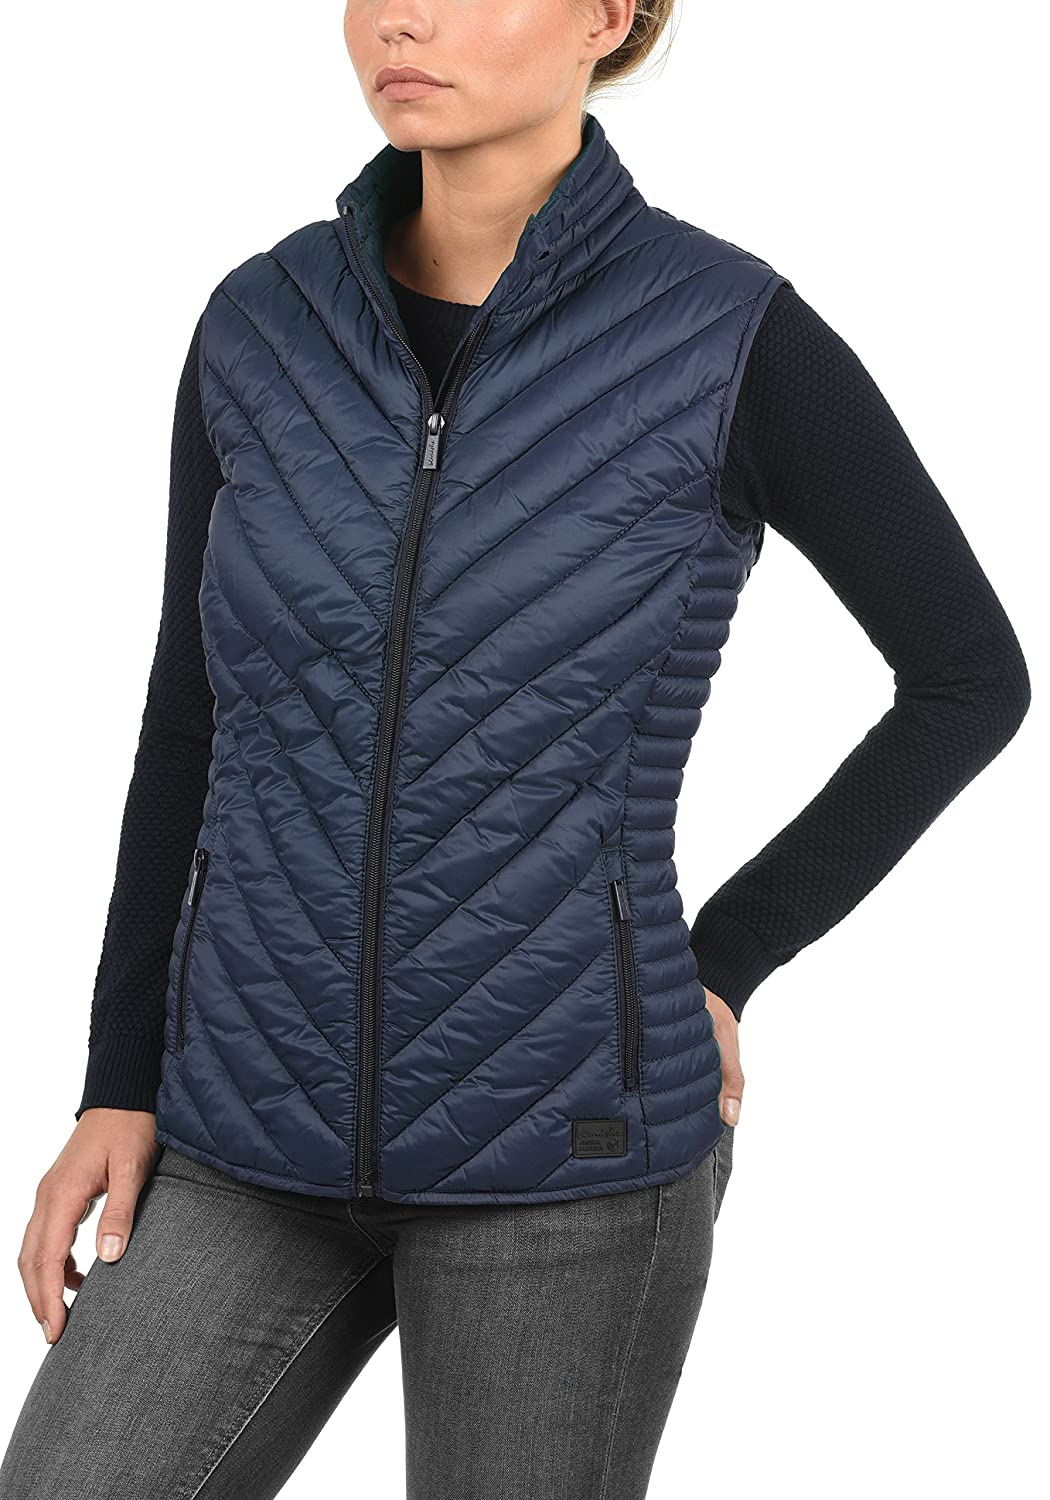 855b3a8bf0a BlendShe Sadie Women s Quilted Gilet Vest Body Warmer with Funnel Neck  larger image